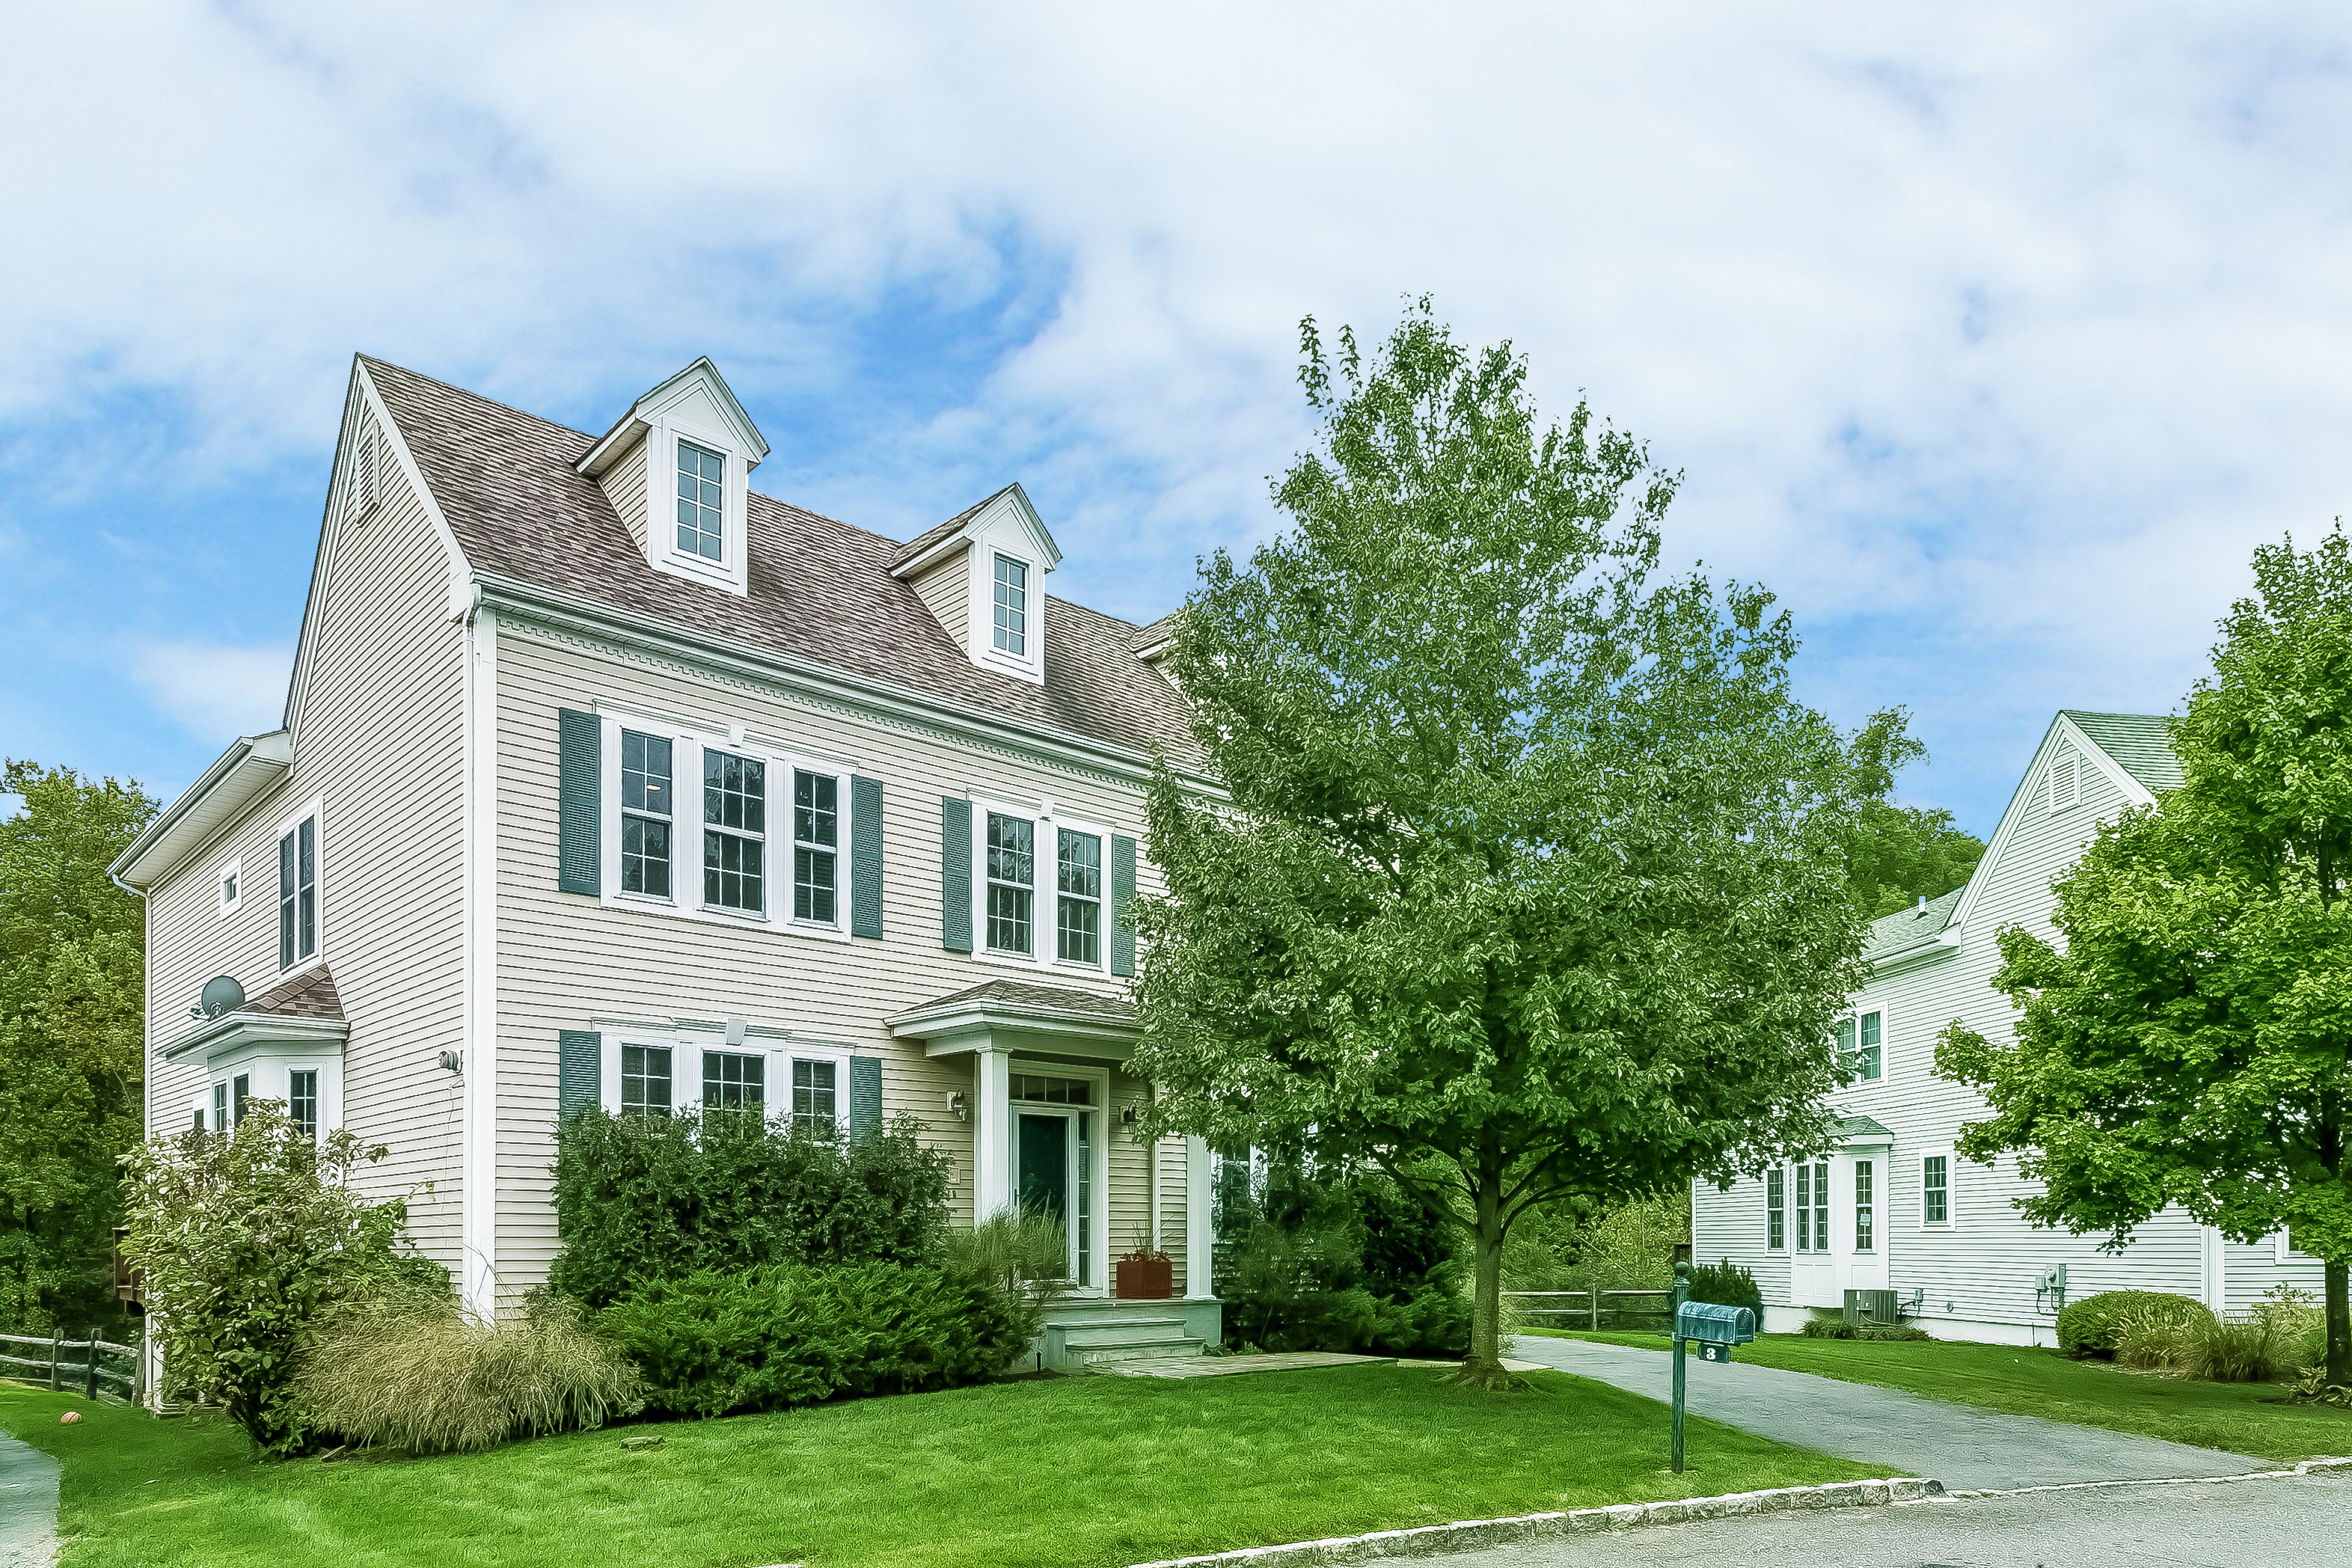 Single Family Home for Sale at 3 Vintage Court Rye Brook, New York, 10573 United States